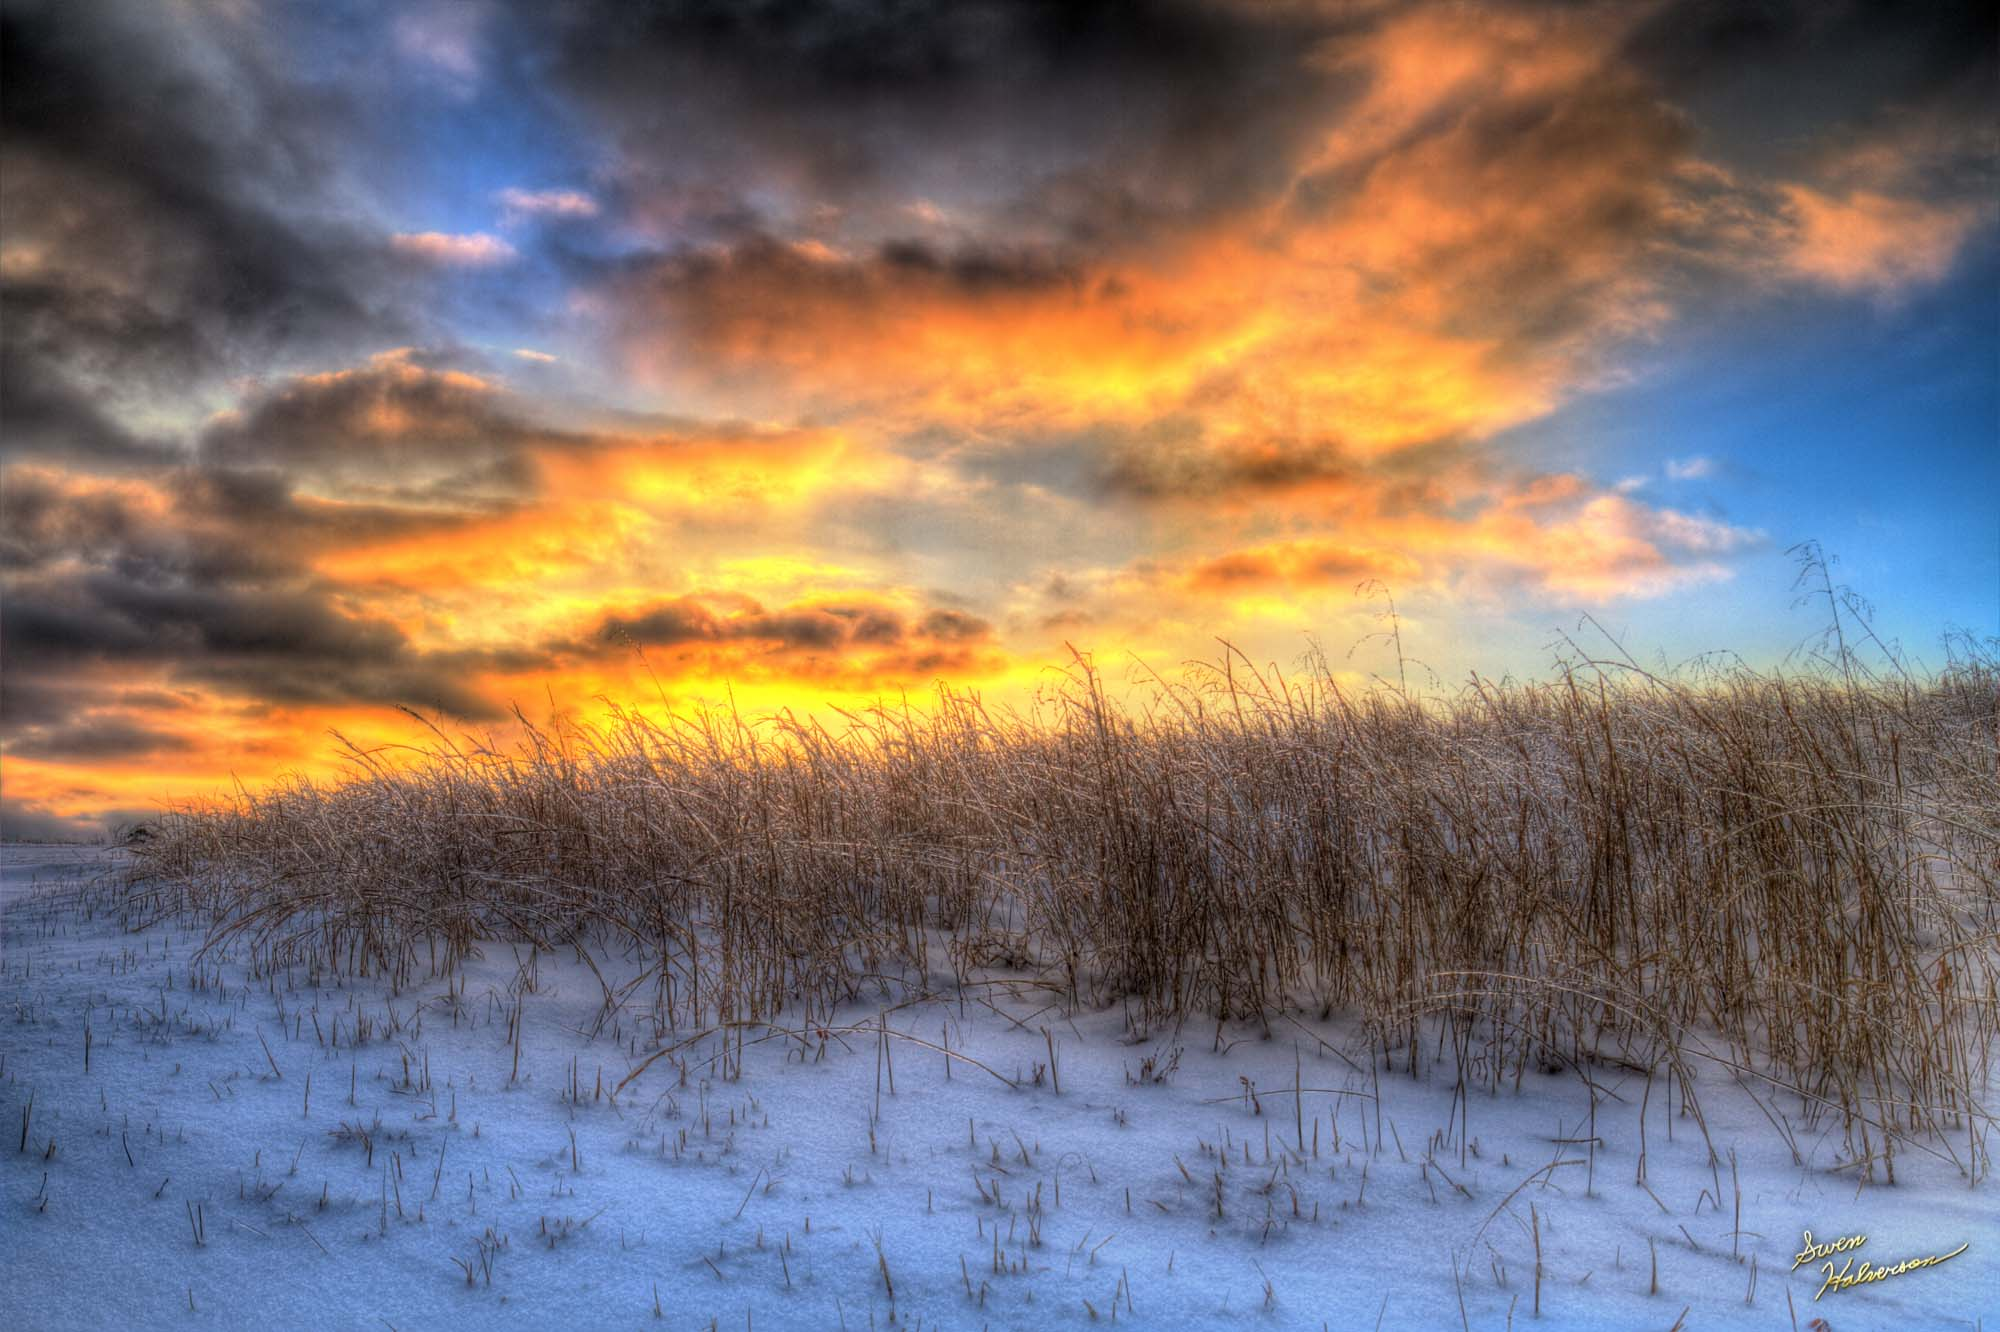 Theme: 7 | Title: Clouds of Fire and Grass of Ice